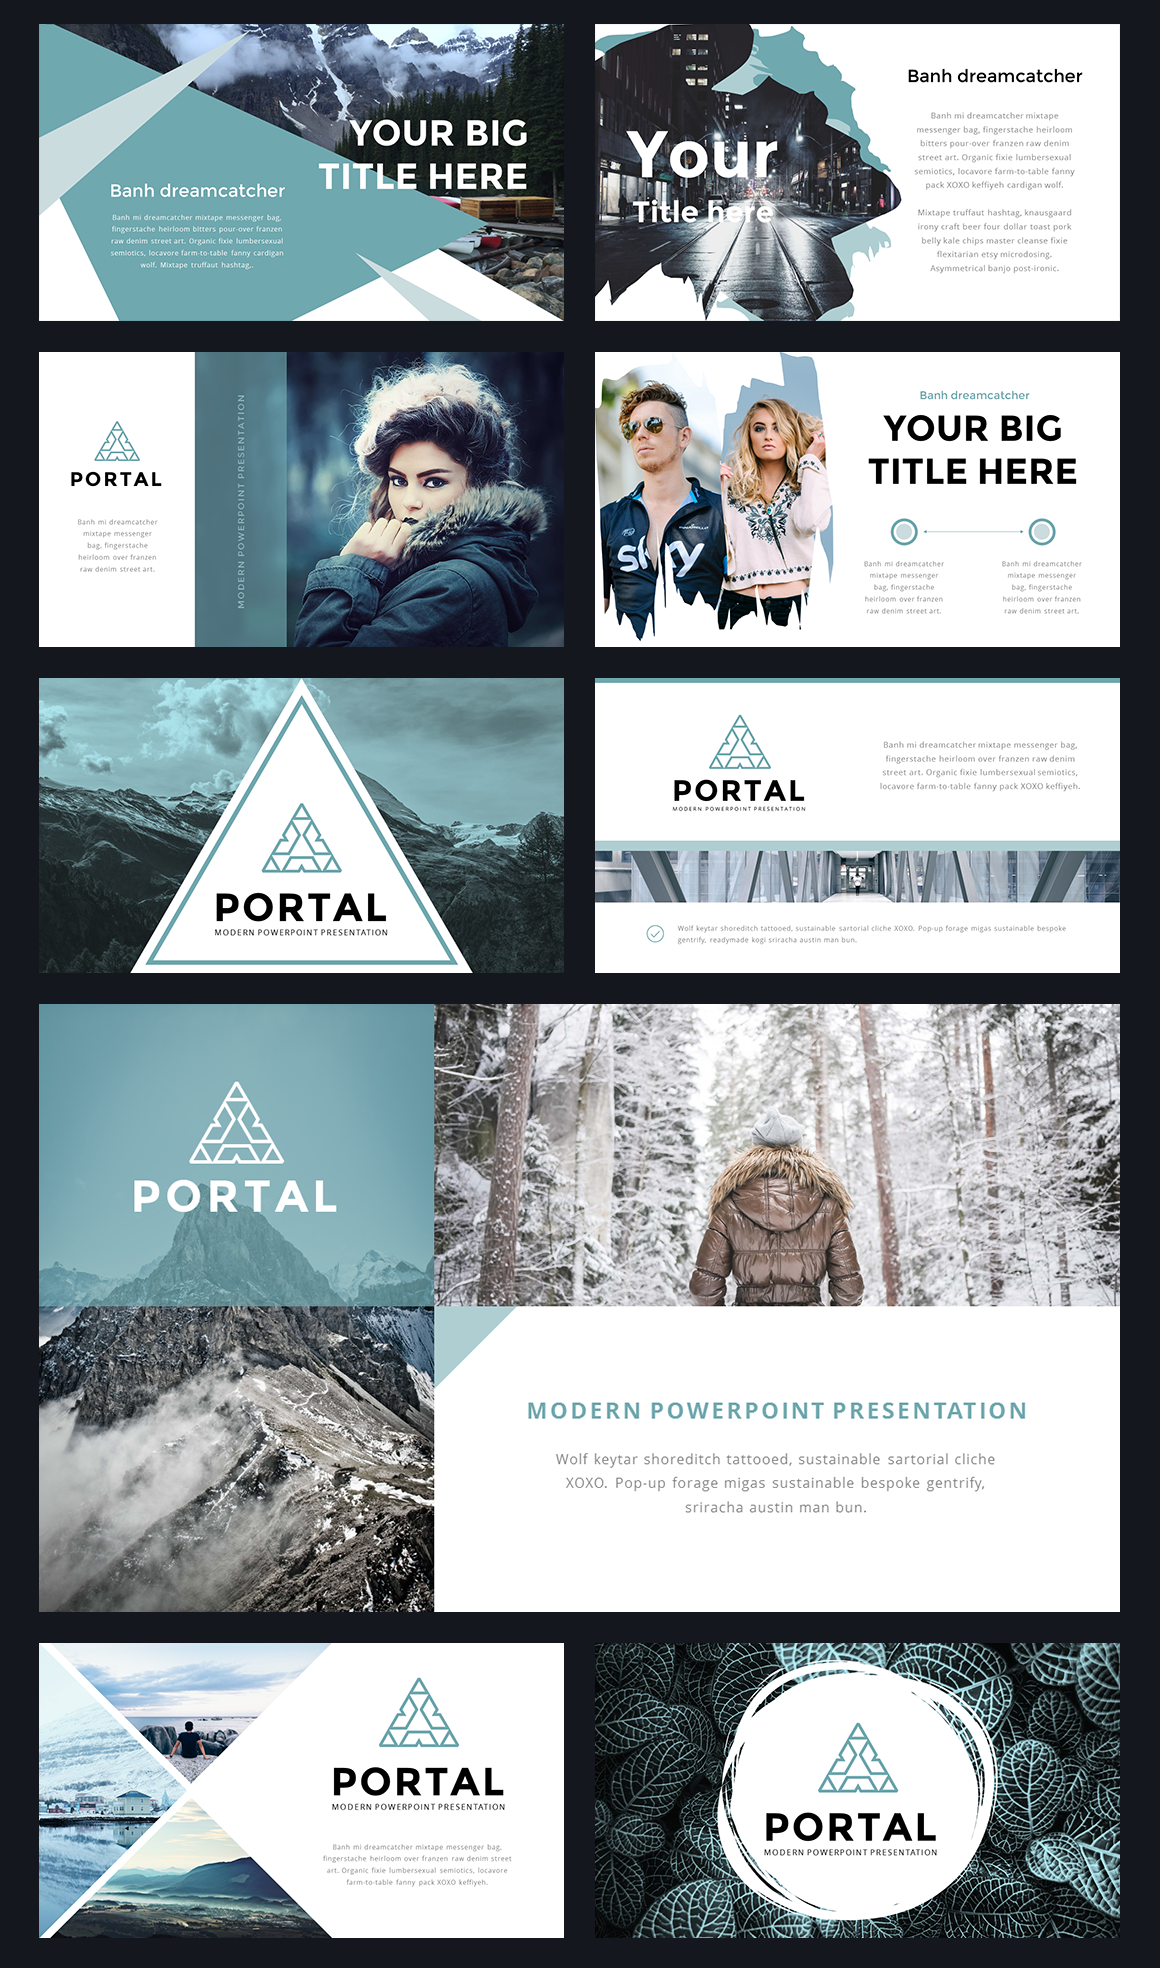 Portal modern powerpoint template apresentao diagramao e portal modern powerpoint template by thrivisualy on creativemarket toneelgroepblik Image collections